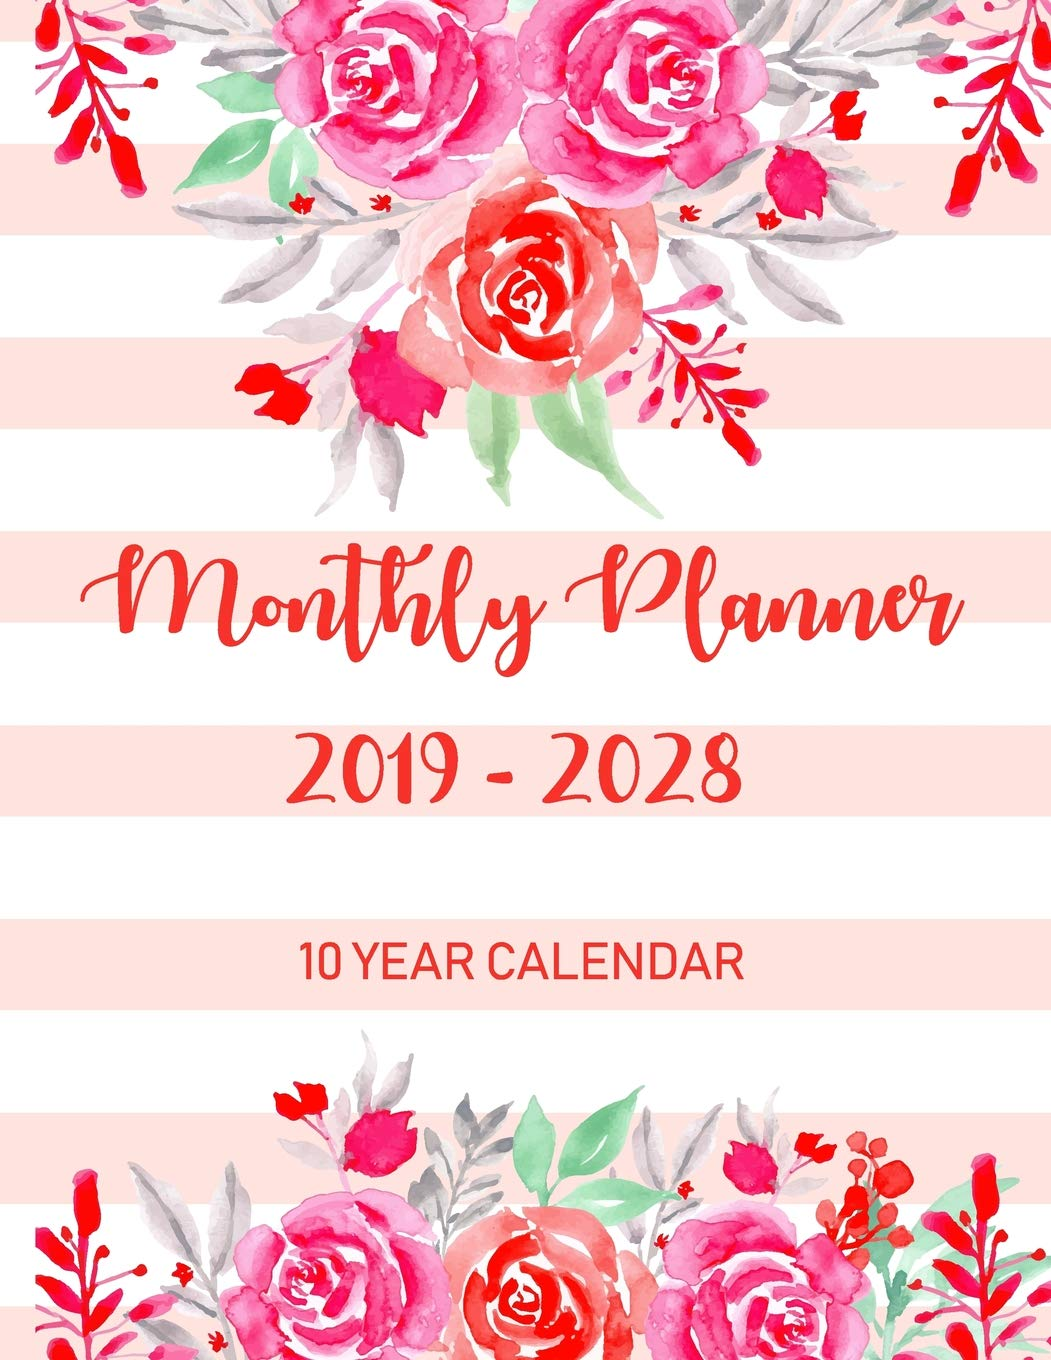 10 Year Calendar Monthly Planner 2019 - 2028: Monthly ...